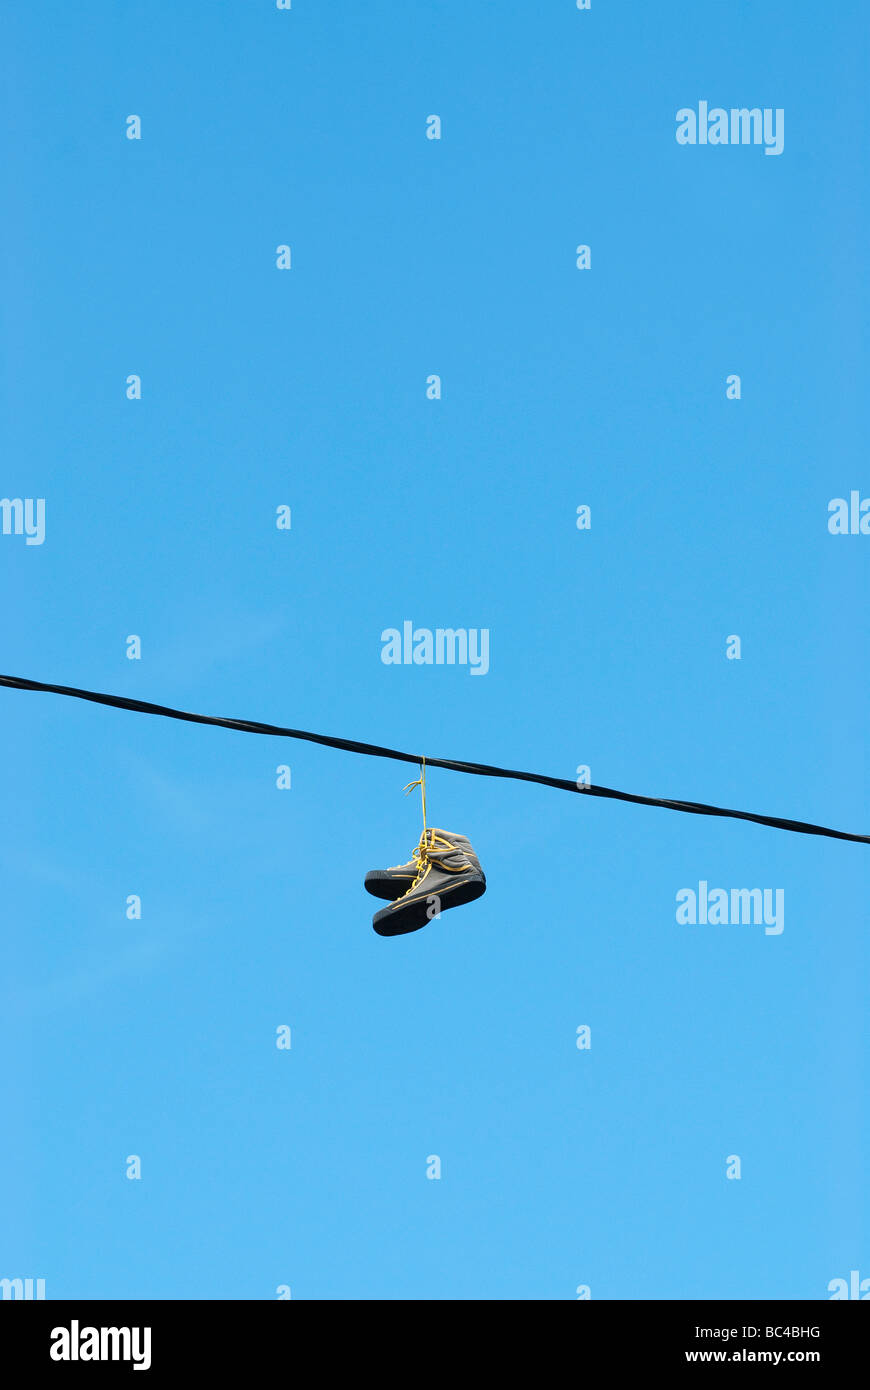 Shoes Hanging Laces On Wire Stock Photos & Shoes Hanging Laces On ...